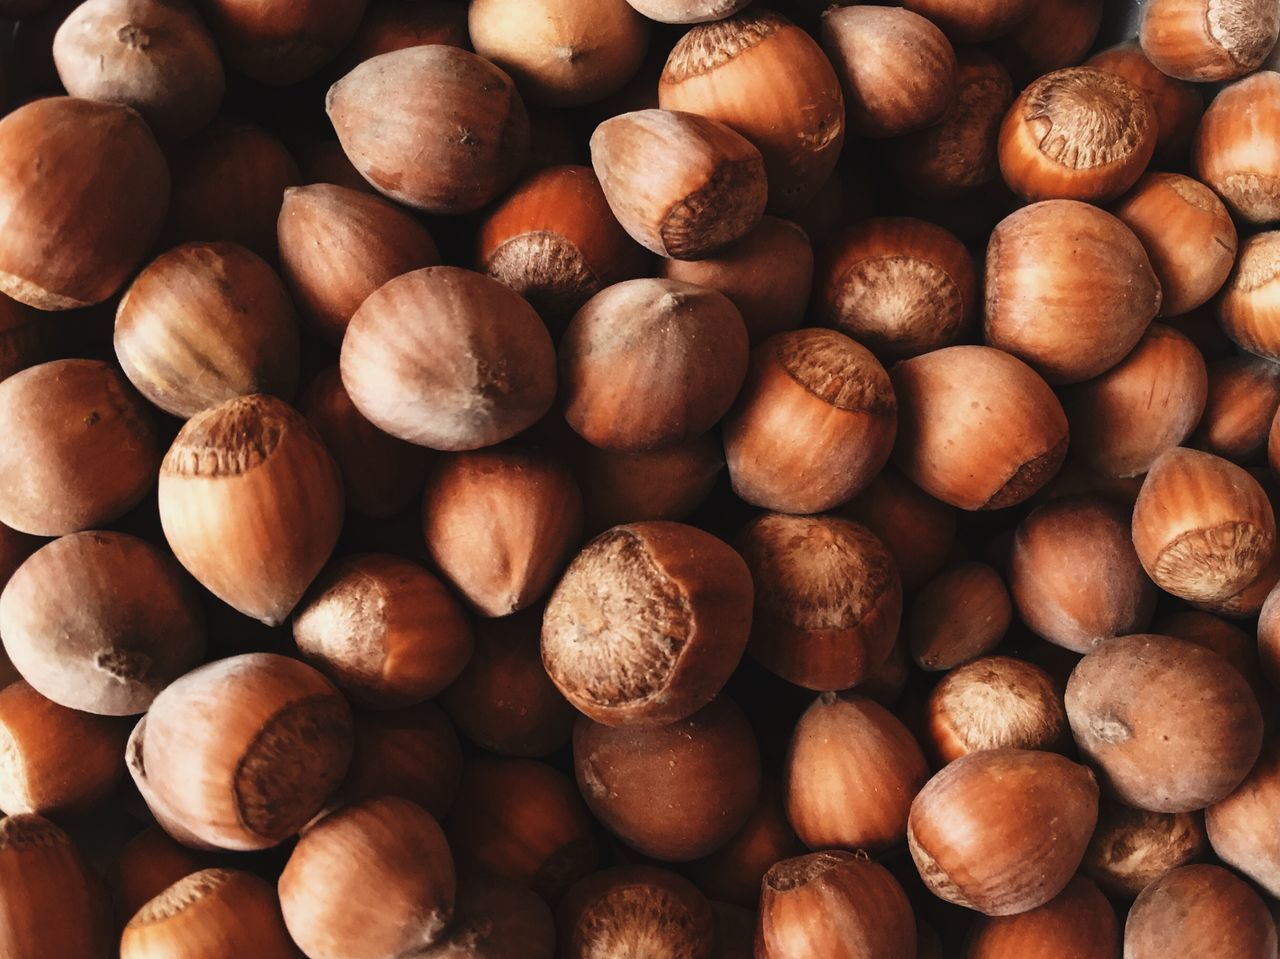 Going nuts... Food And Drink Food Freshness Healthy Eating Still Life Abundance Full Frame Backgrounds Large Group Of Objects No People Close-up Heap Indoors  Nutshell Day Hazelnut Hazelnuts Nuts Nature Macro VSCO My Favorite Photo WeekOnEyeEm Made In Romania Details Of My Life